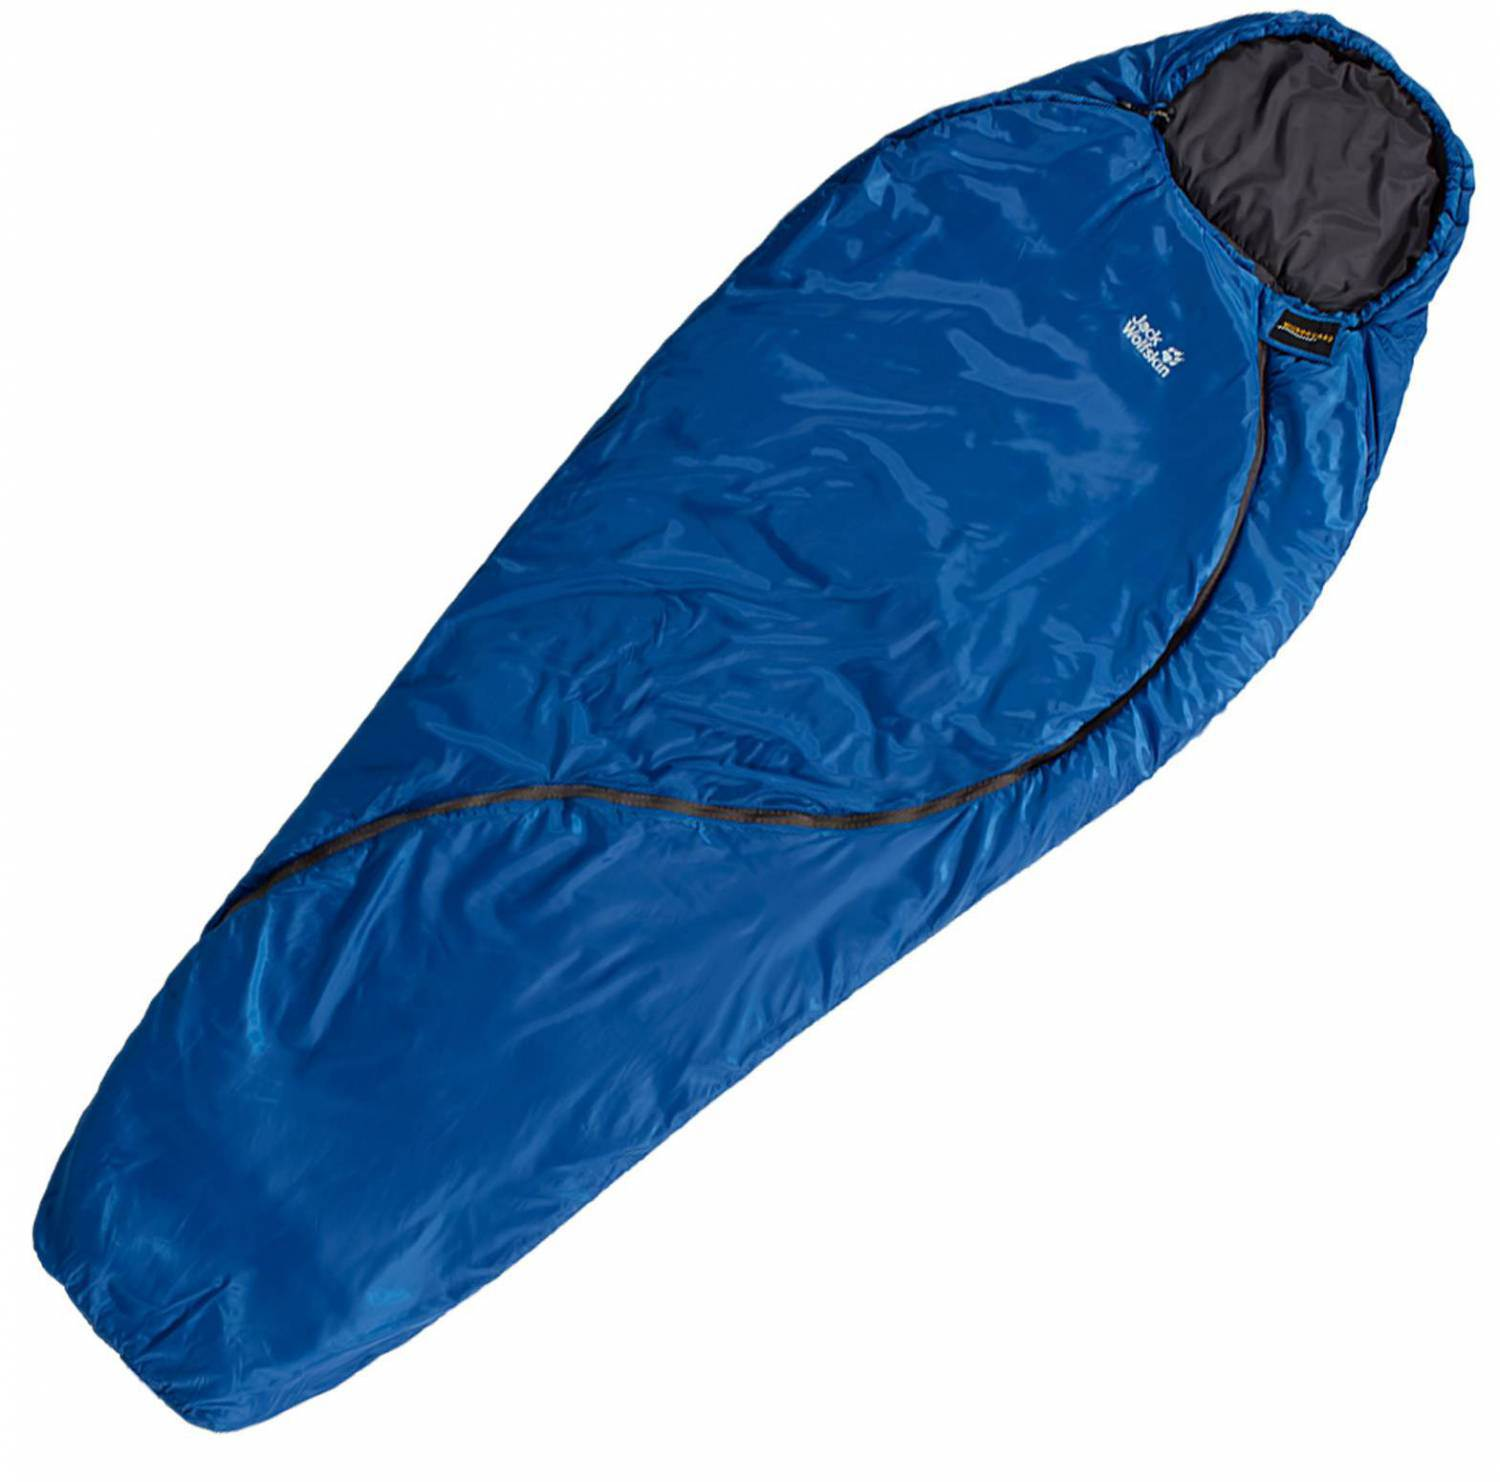 Jack Wolfskin Smoozip +3 Schlafsack (Farbe: 1127 classic blue, links)